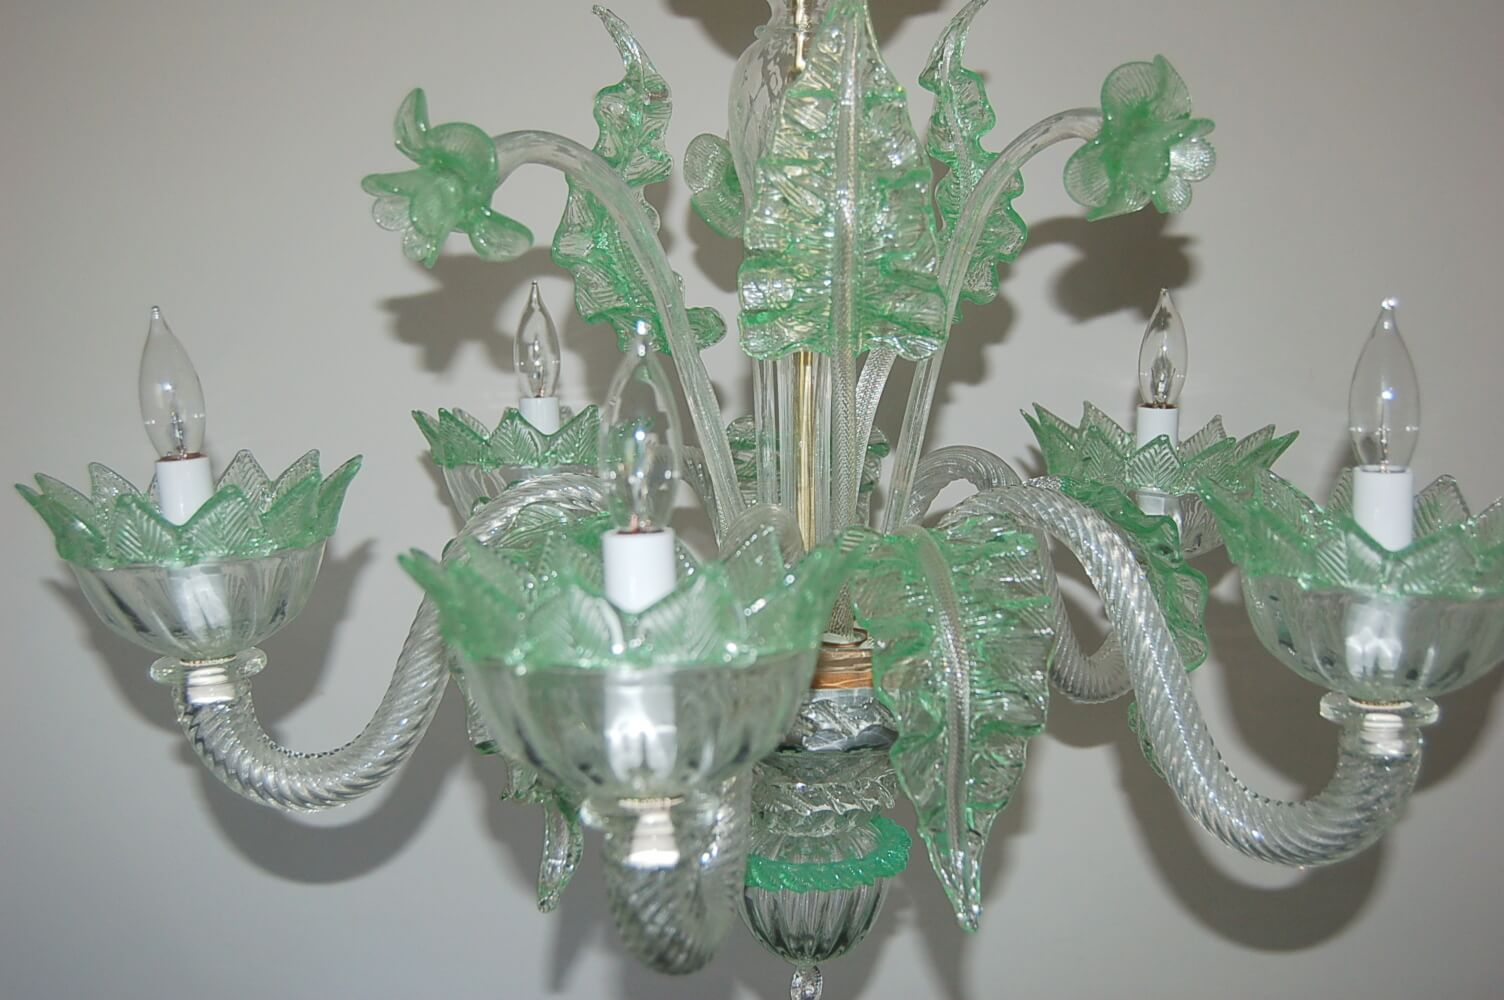 Vintage Murano Glass Chandelier of Clear Opaline with Green Accents  Swank Lighting